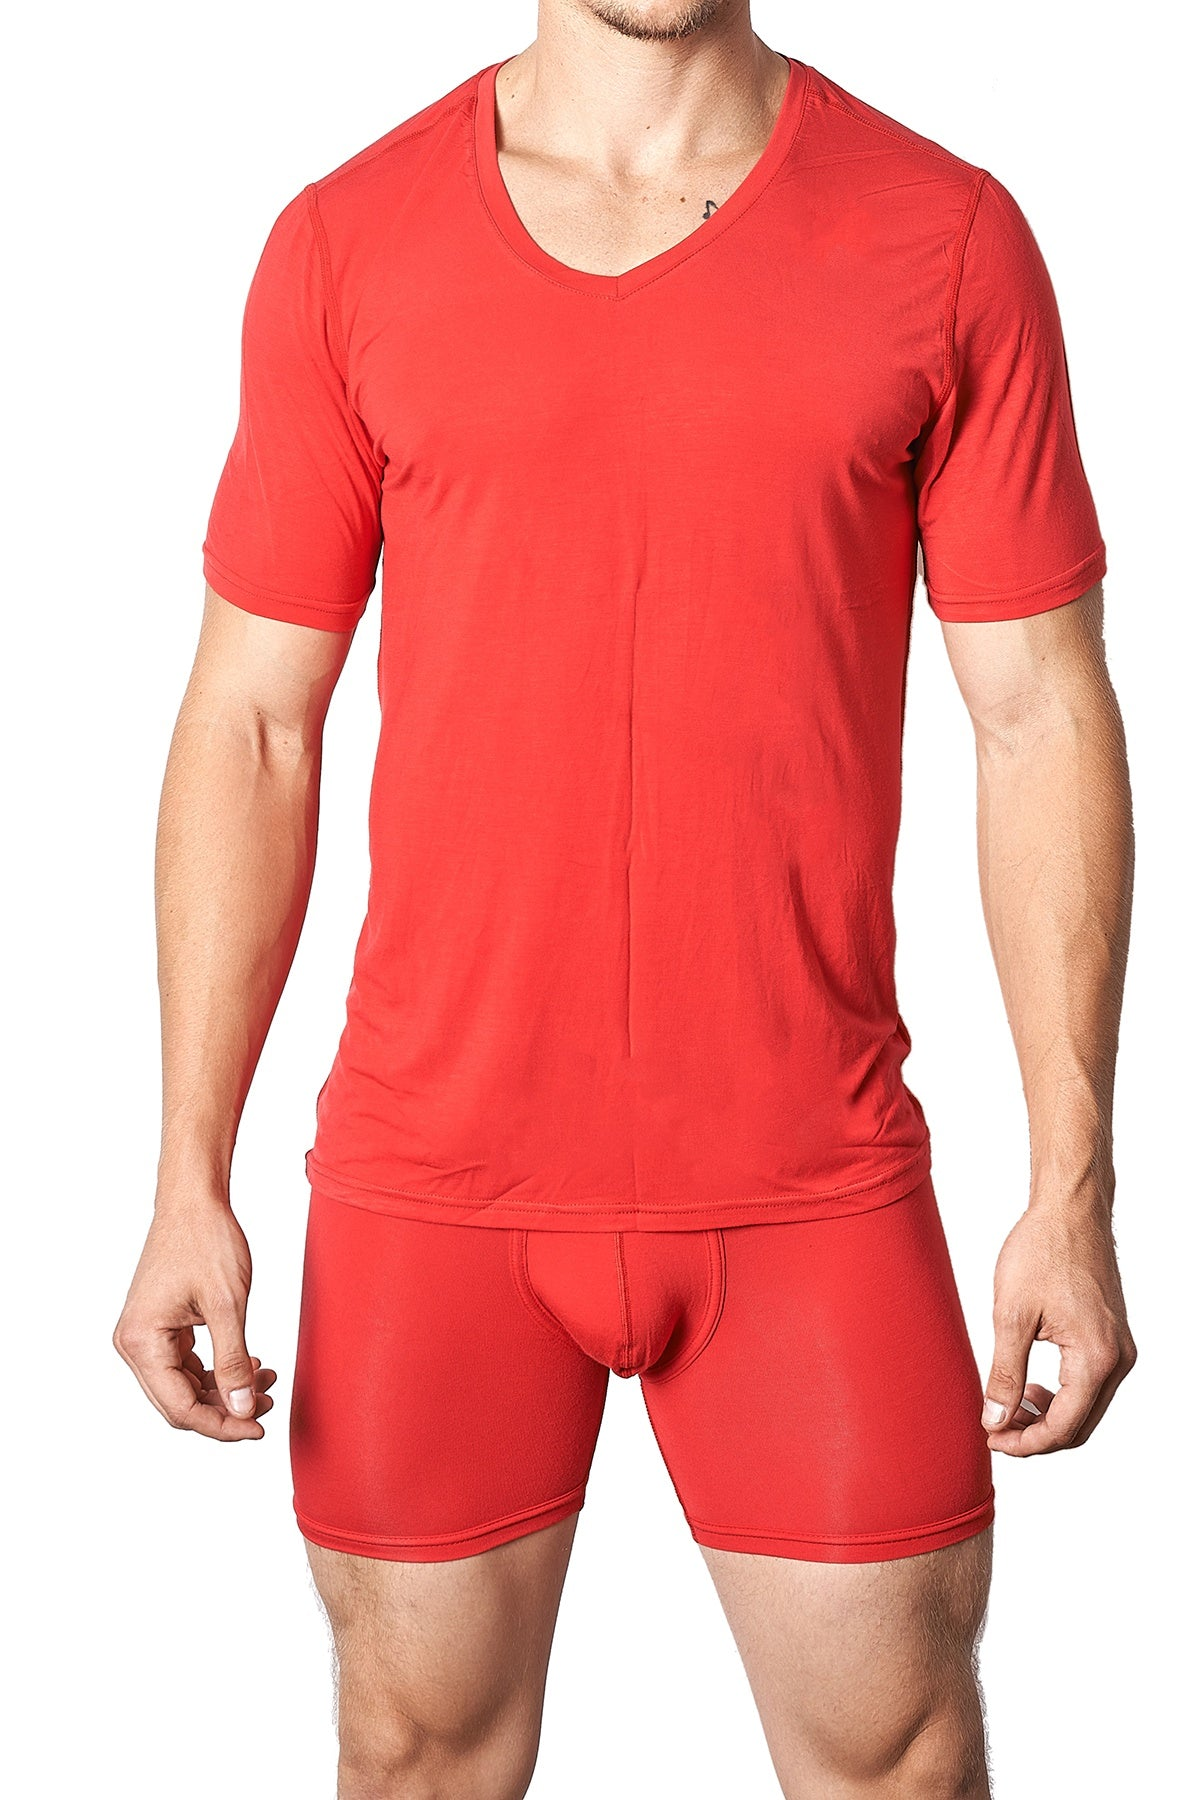 Yocisco's Red Essentials V-Neck Shirt